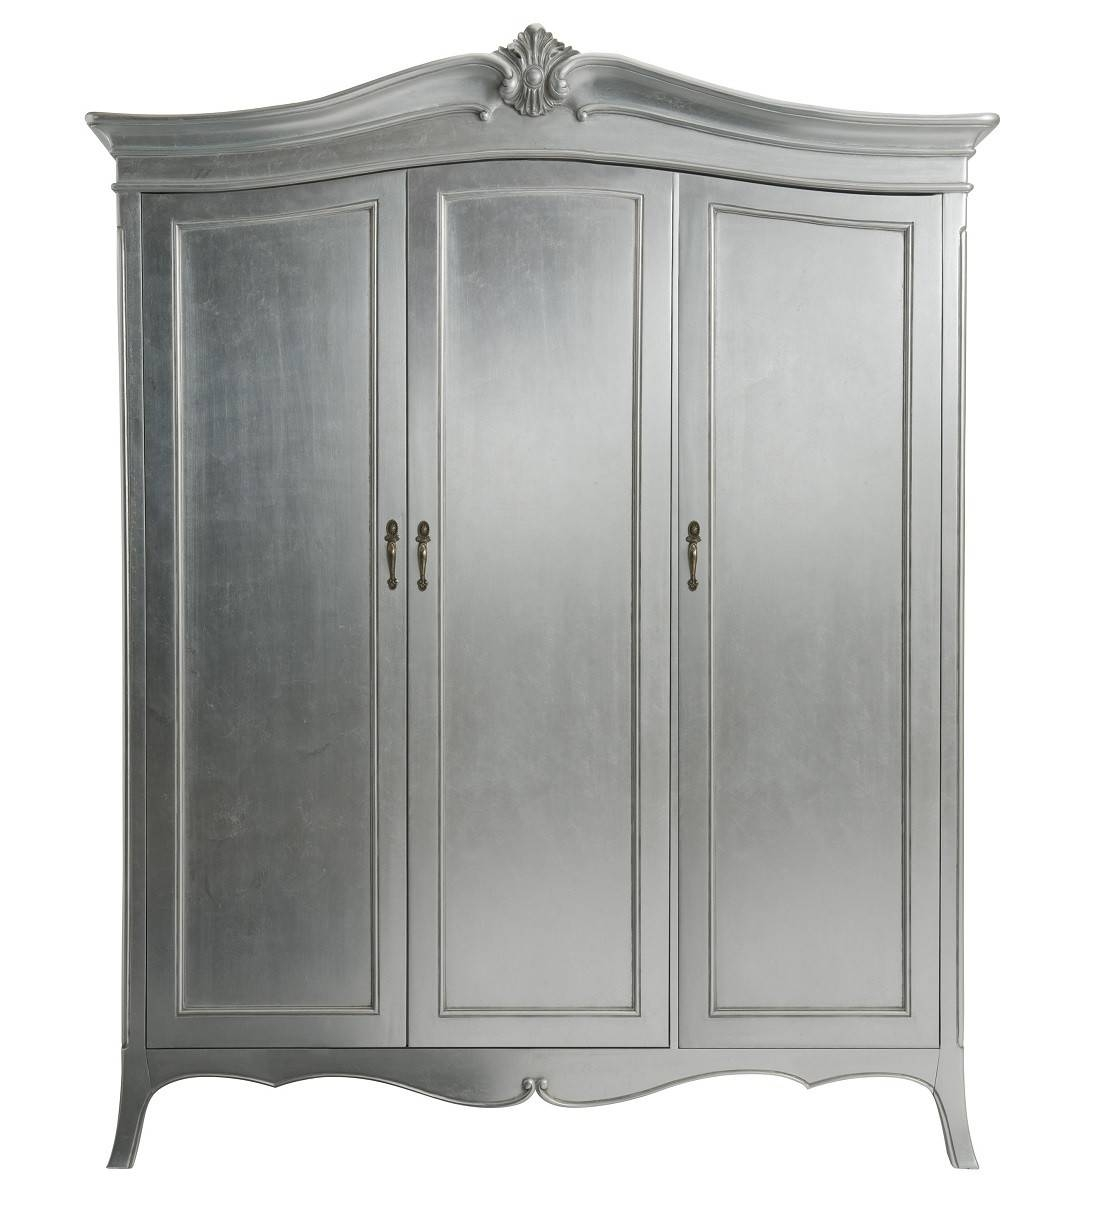 Louis French Silver Leaf 3 Door Triple Wardrobe | Oak Furniture Uk For 3 Door French Wardrobes (View 10 of 15)